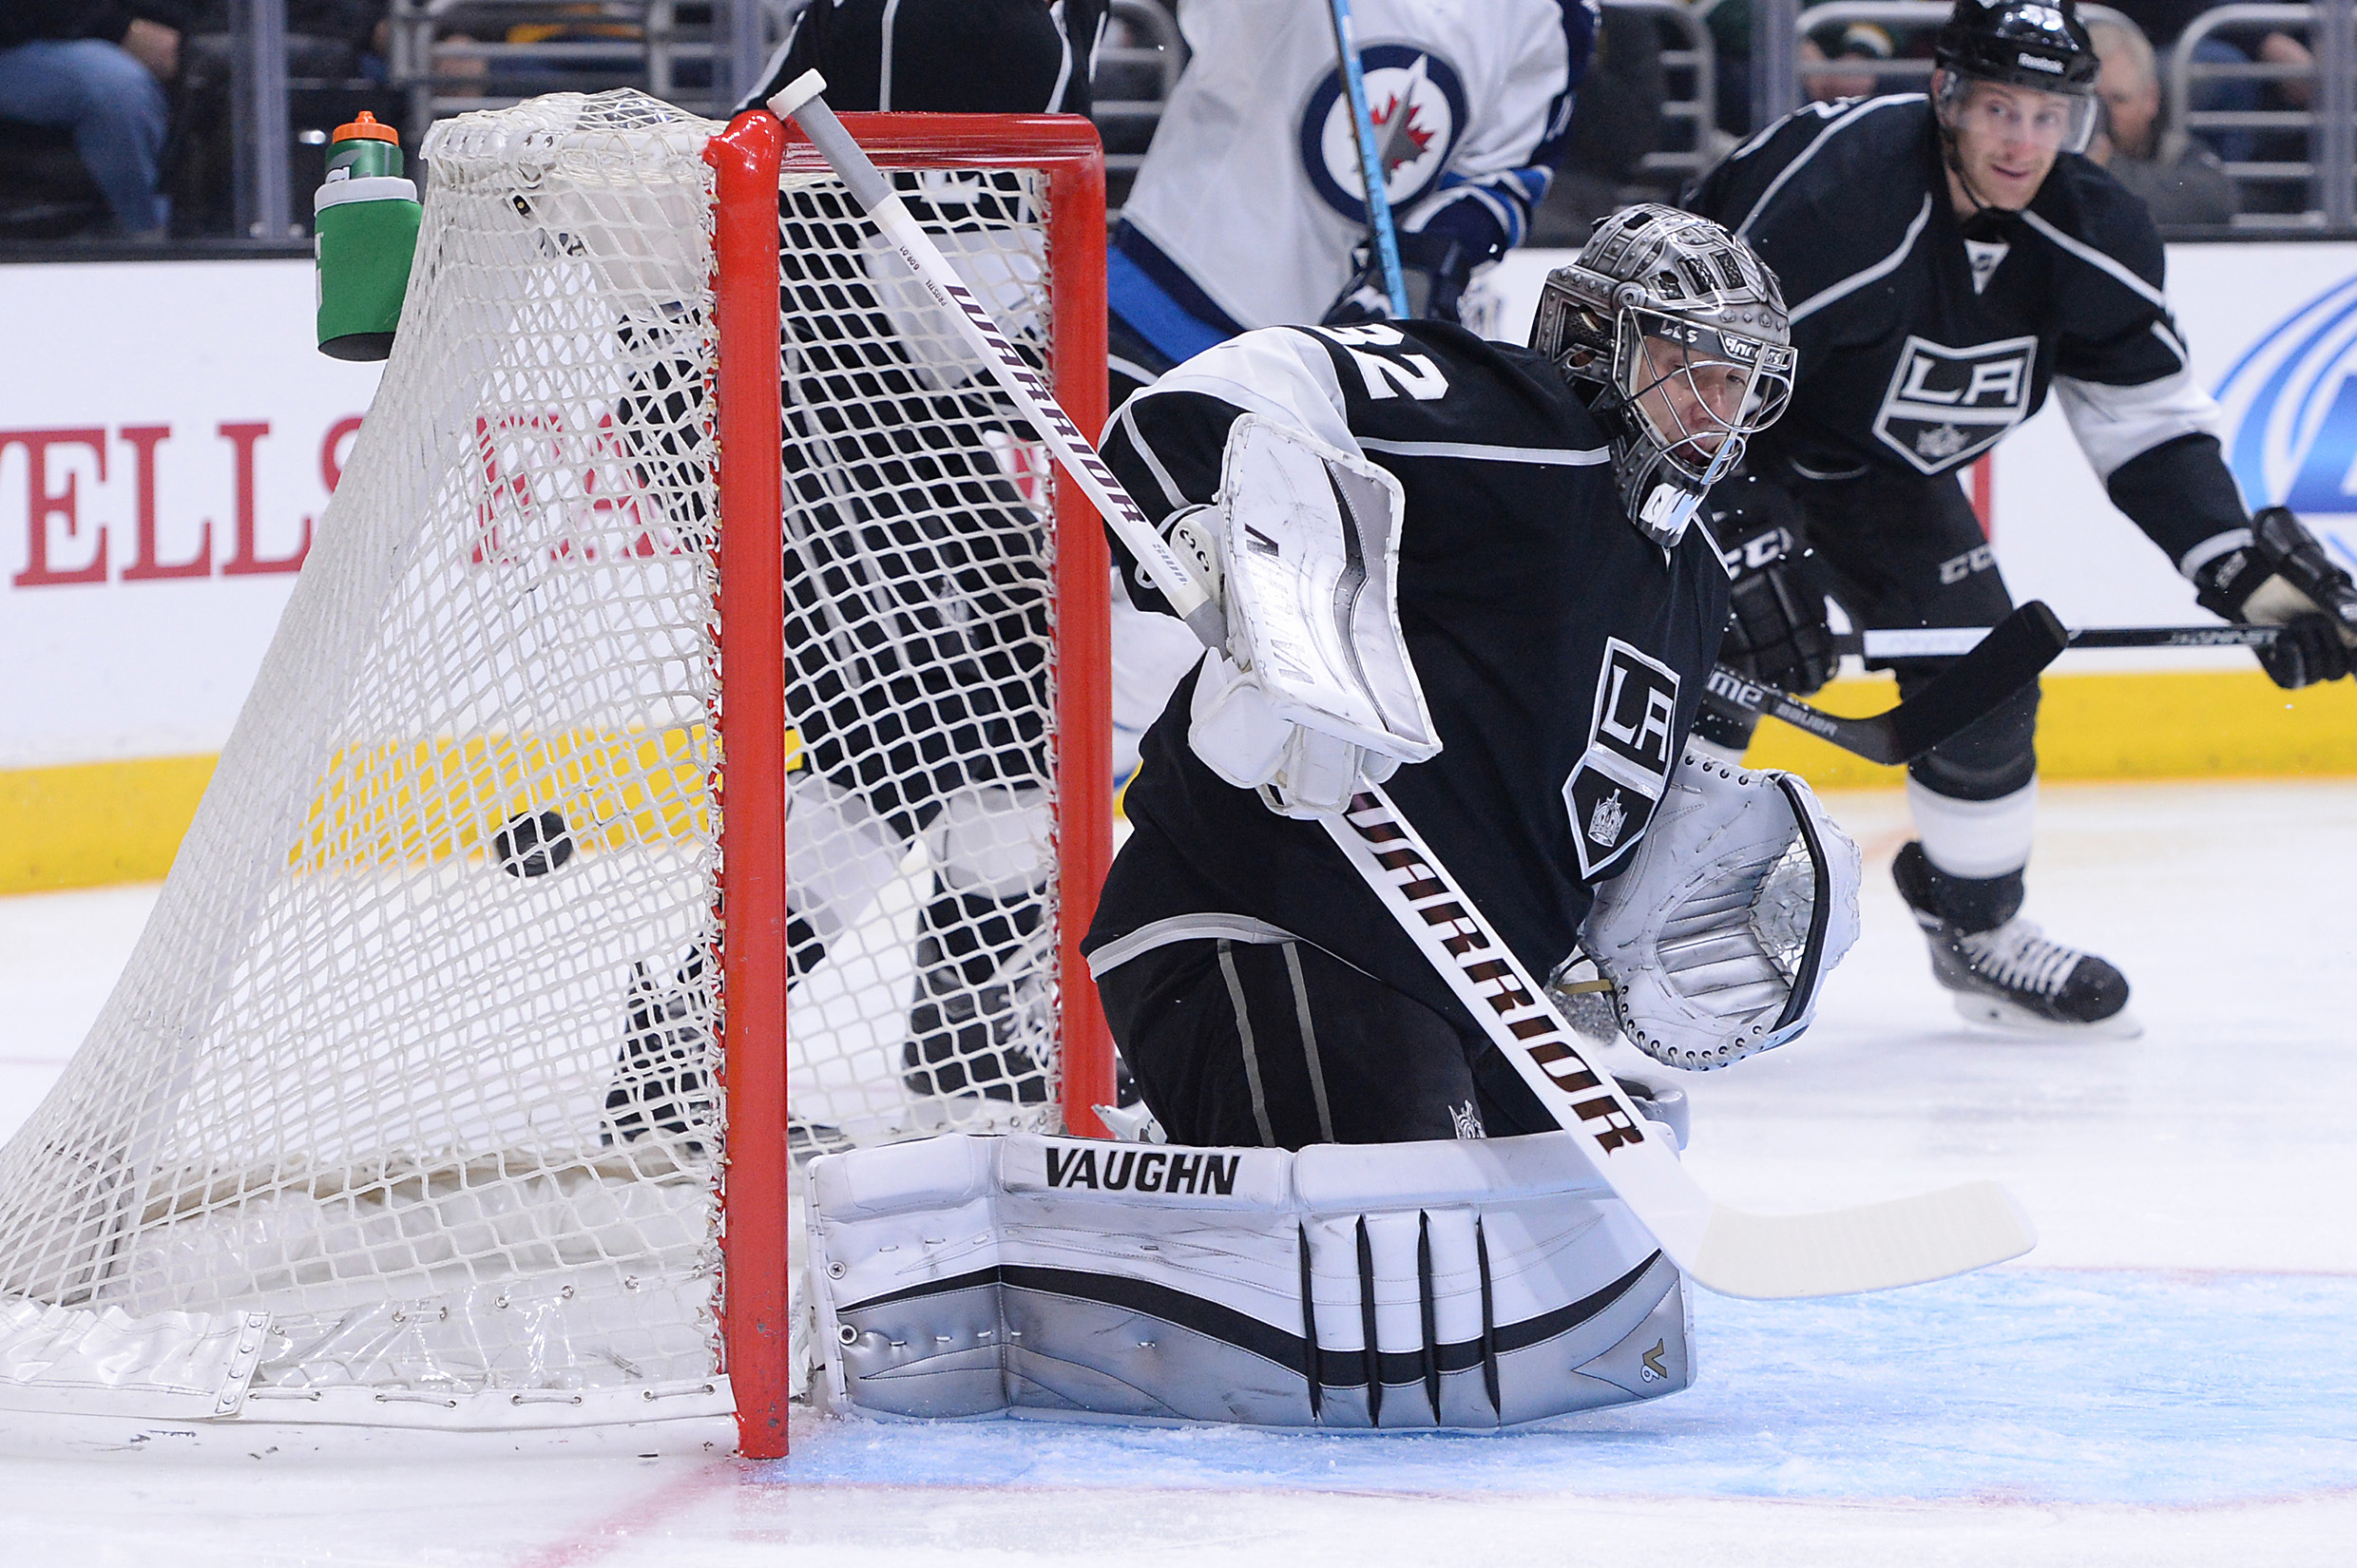 rare photograph of jonathan quick not being scor-oh wait, he's being scored on here too. nevermind